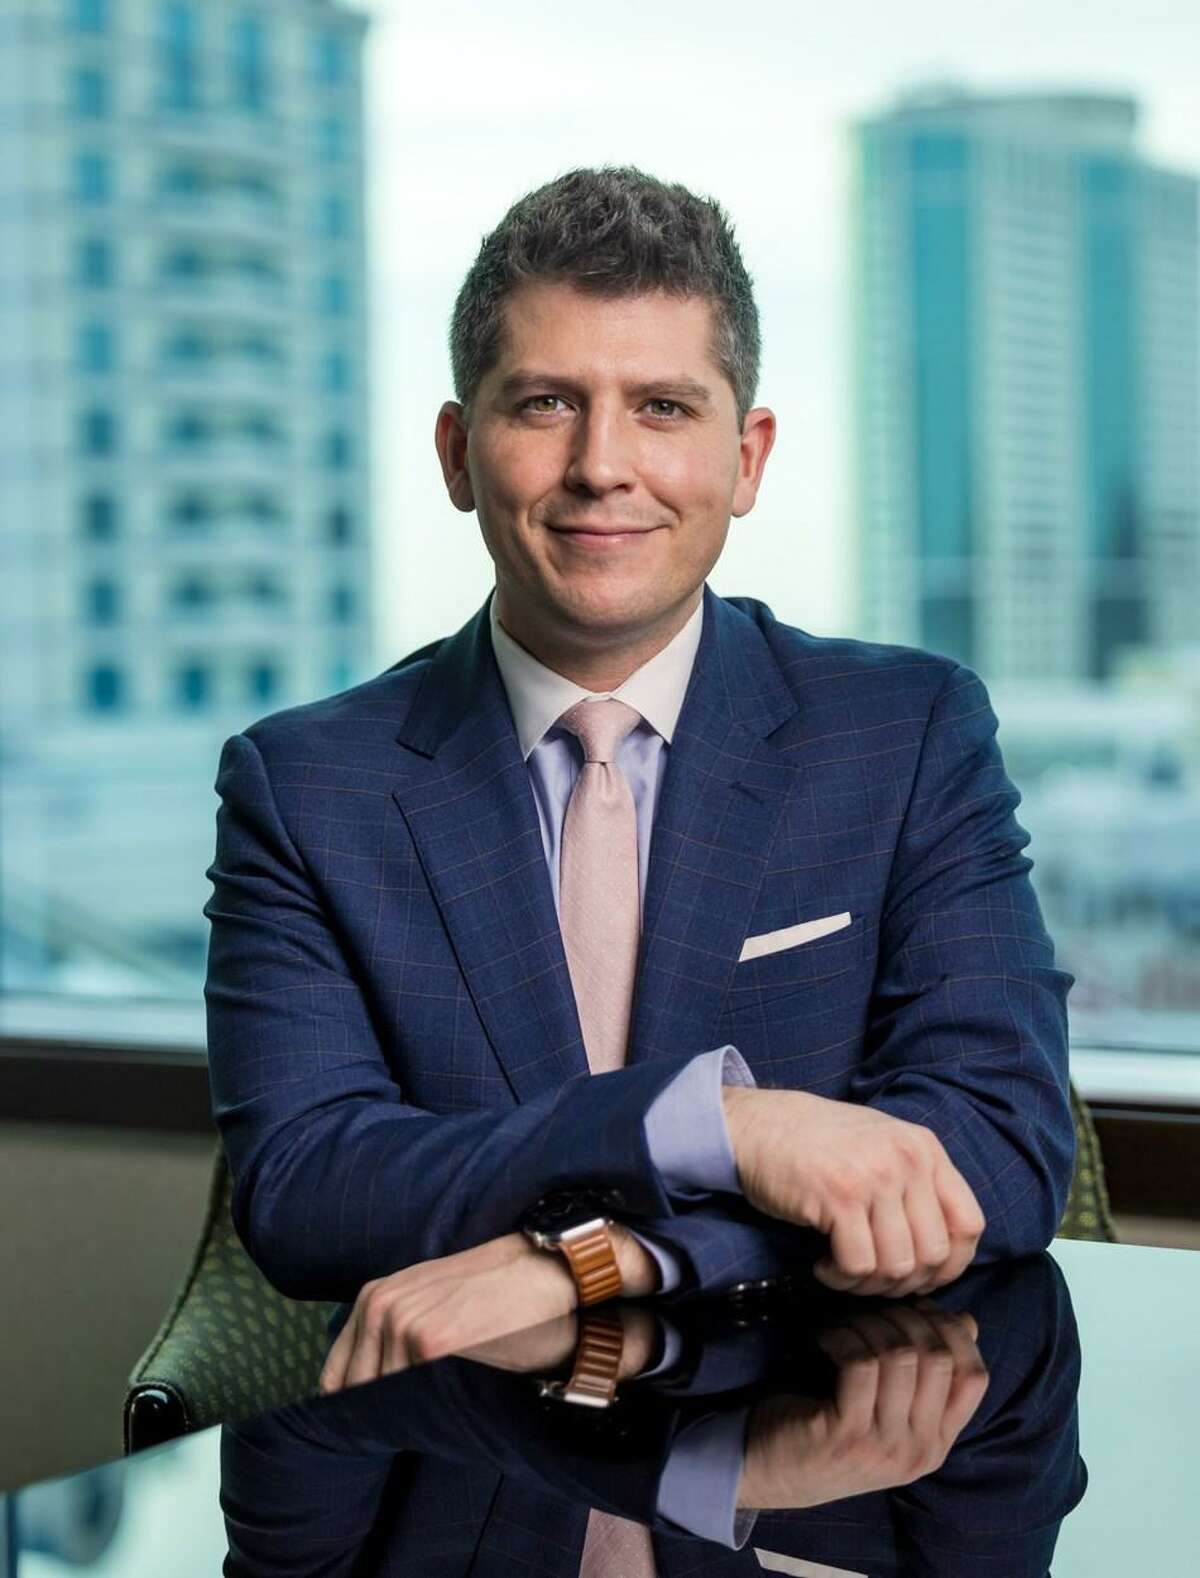 Jason Guyot Foxwoods Resort Casino's new president and chief executive officer. He had served as interim CEO since April 2020.